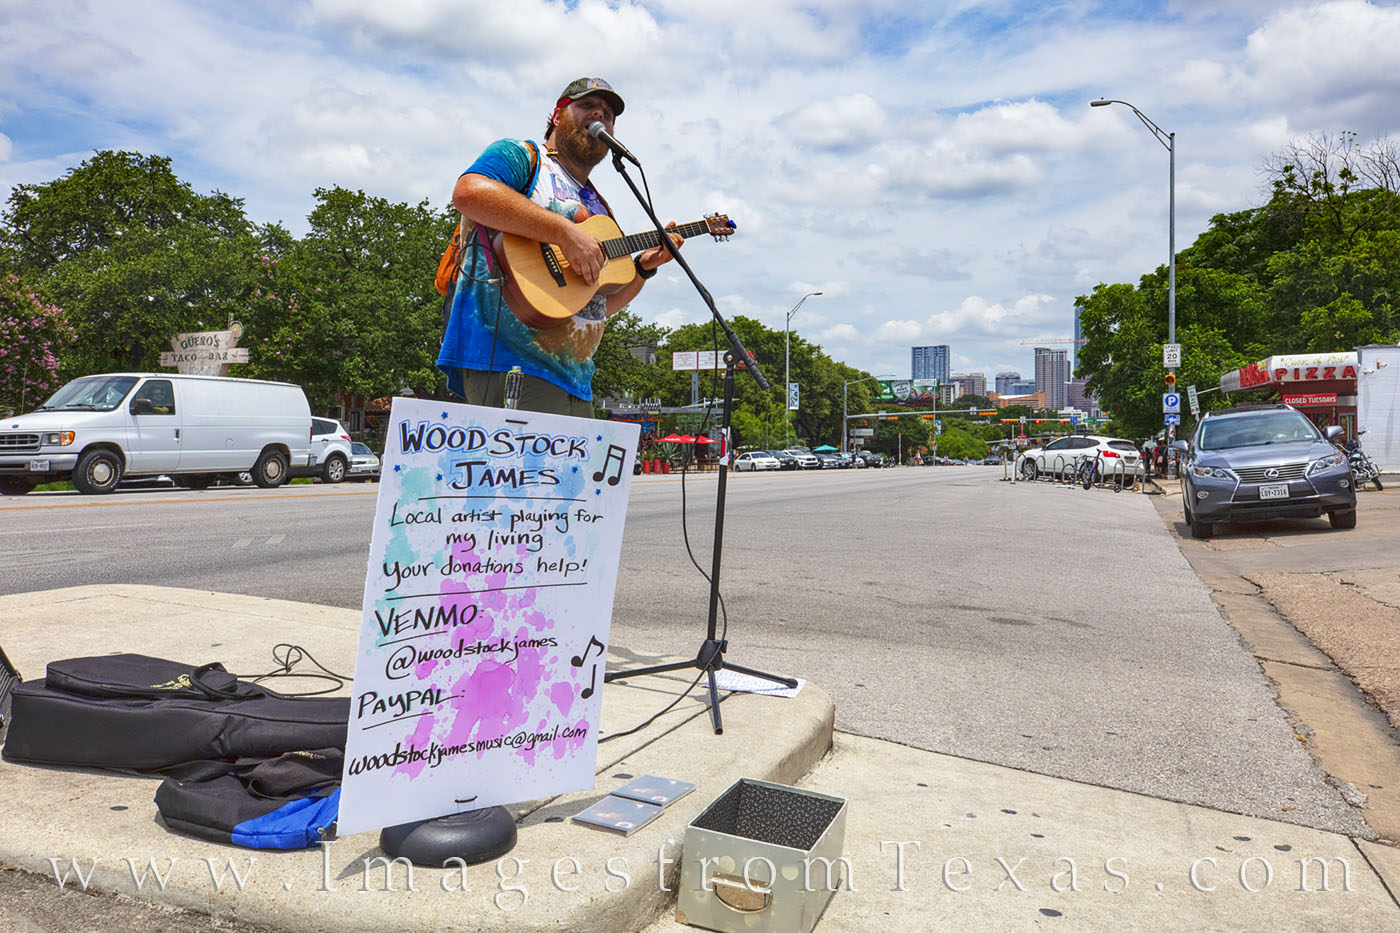 woodstock james, south congress, street performer, austin, downtown, congress ave, photo